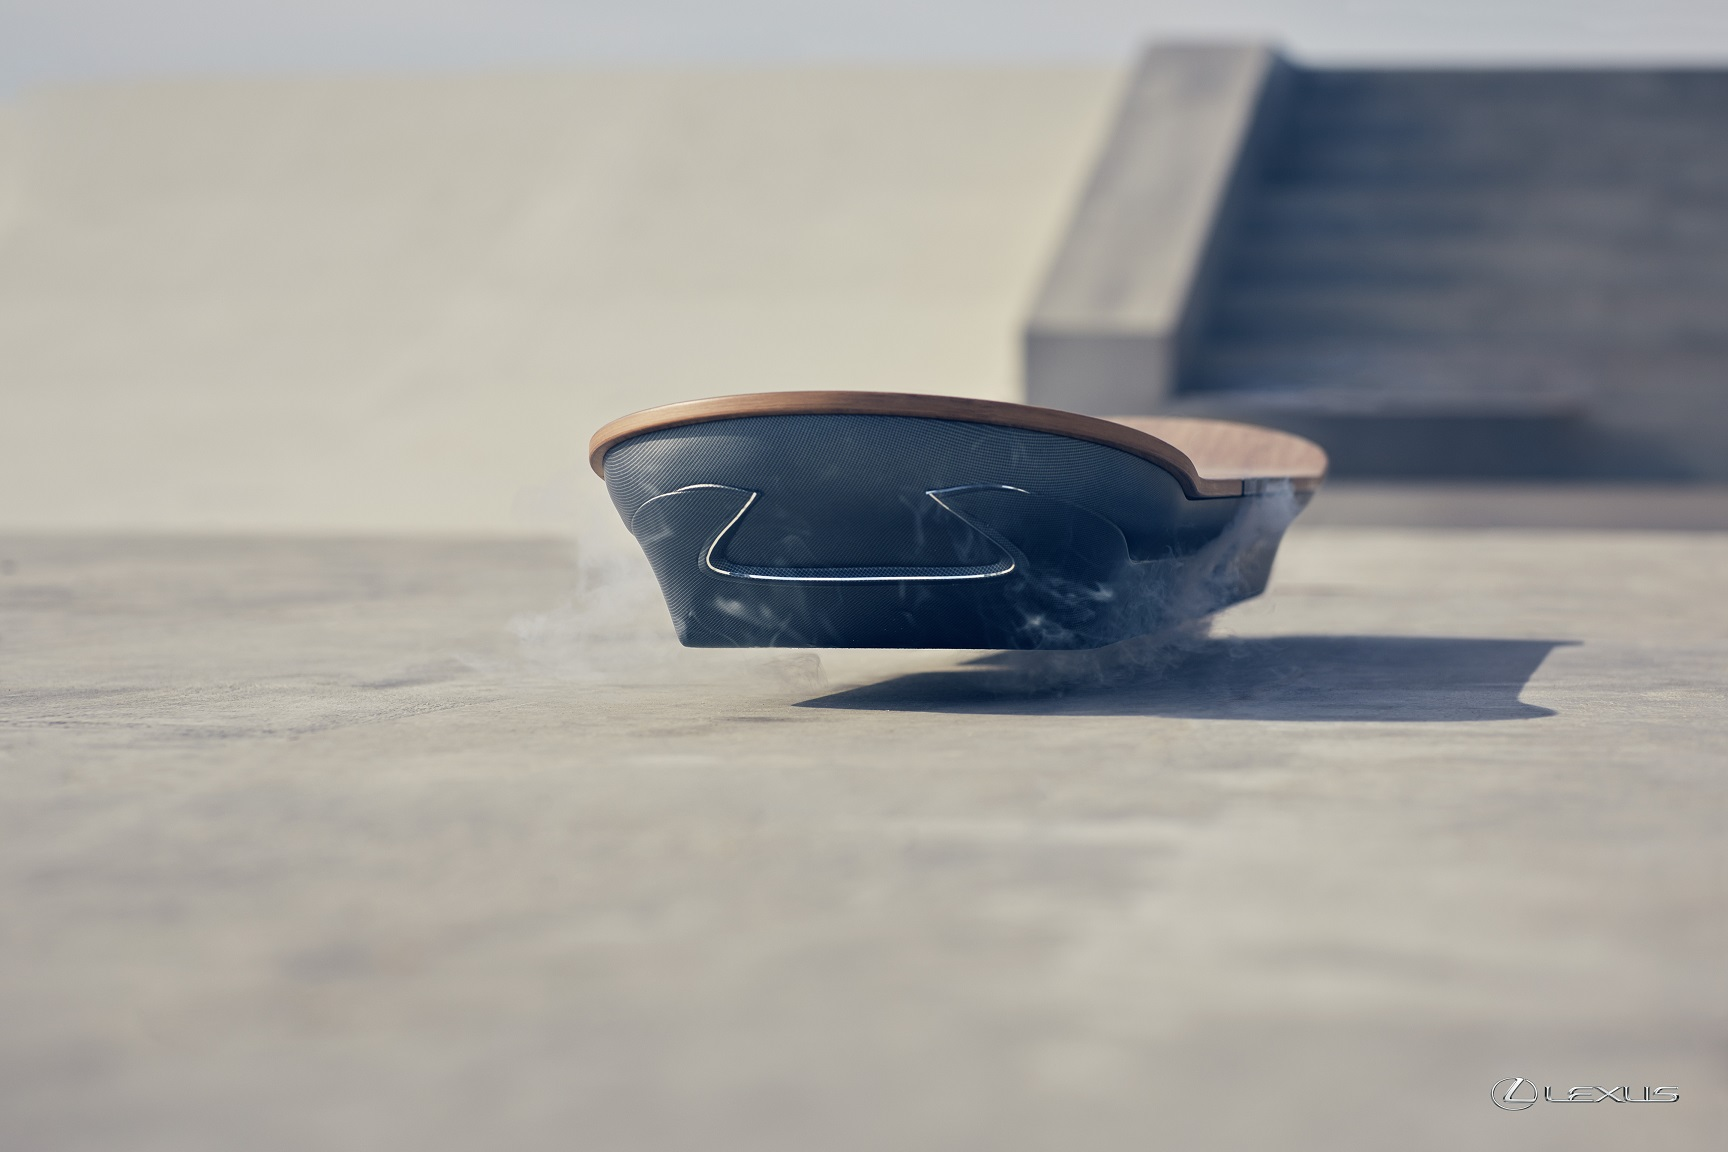 Lexus' hover board is getting closer than ever to being complete.